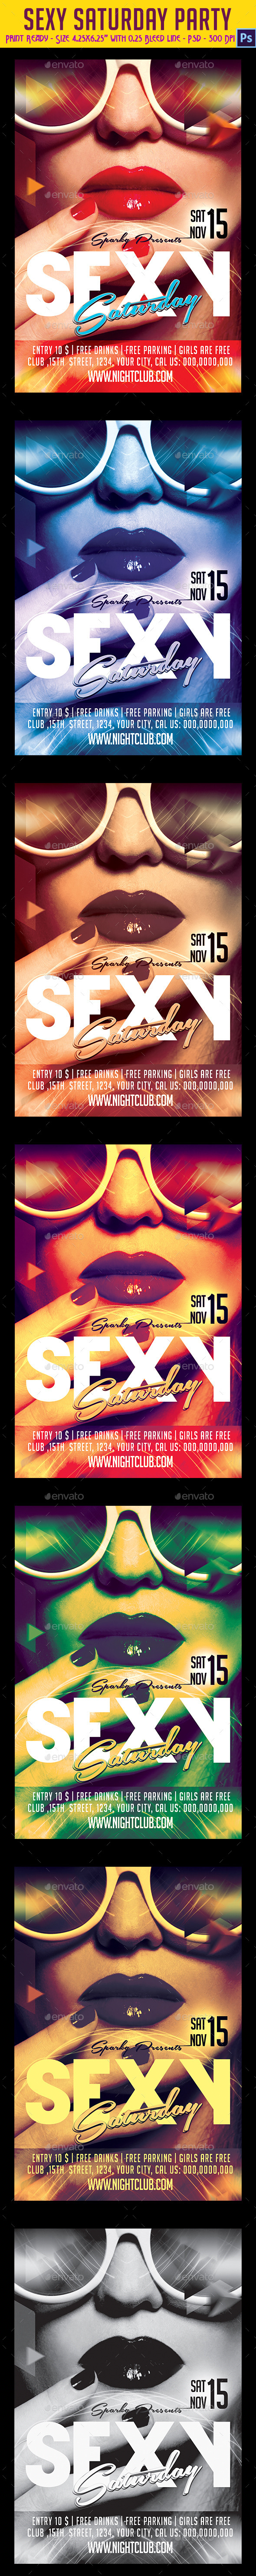 Sexy Saturdays Party Flyer - Clubs & Parties Events